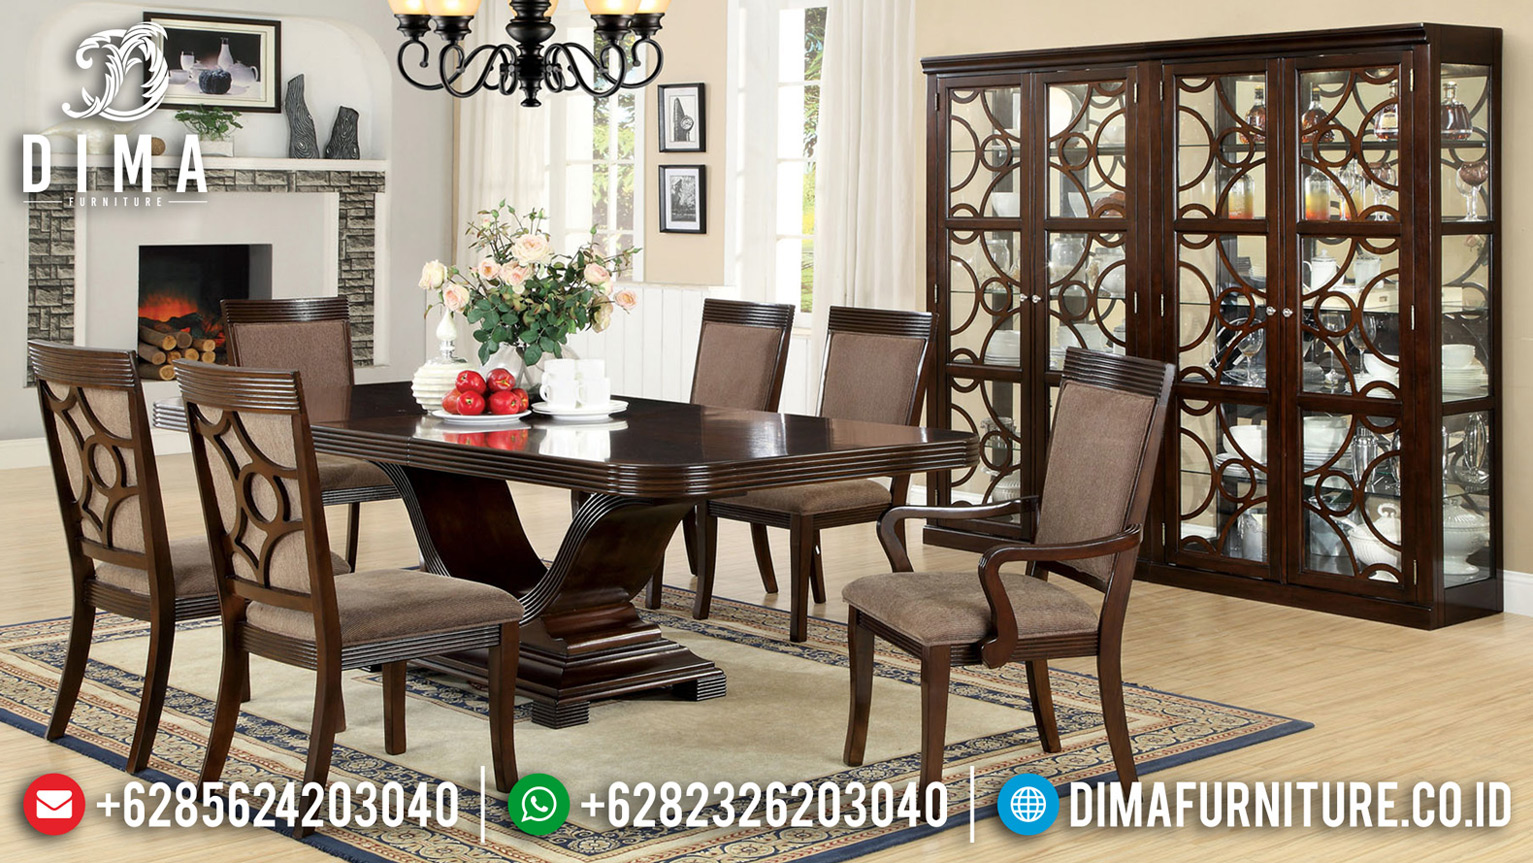 Meja Makan Minimalis Klasik Jati Natural Antique Solid Wood Jepara BT-0667